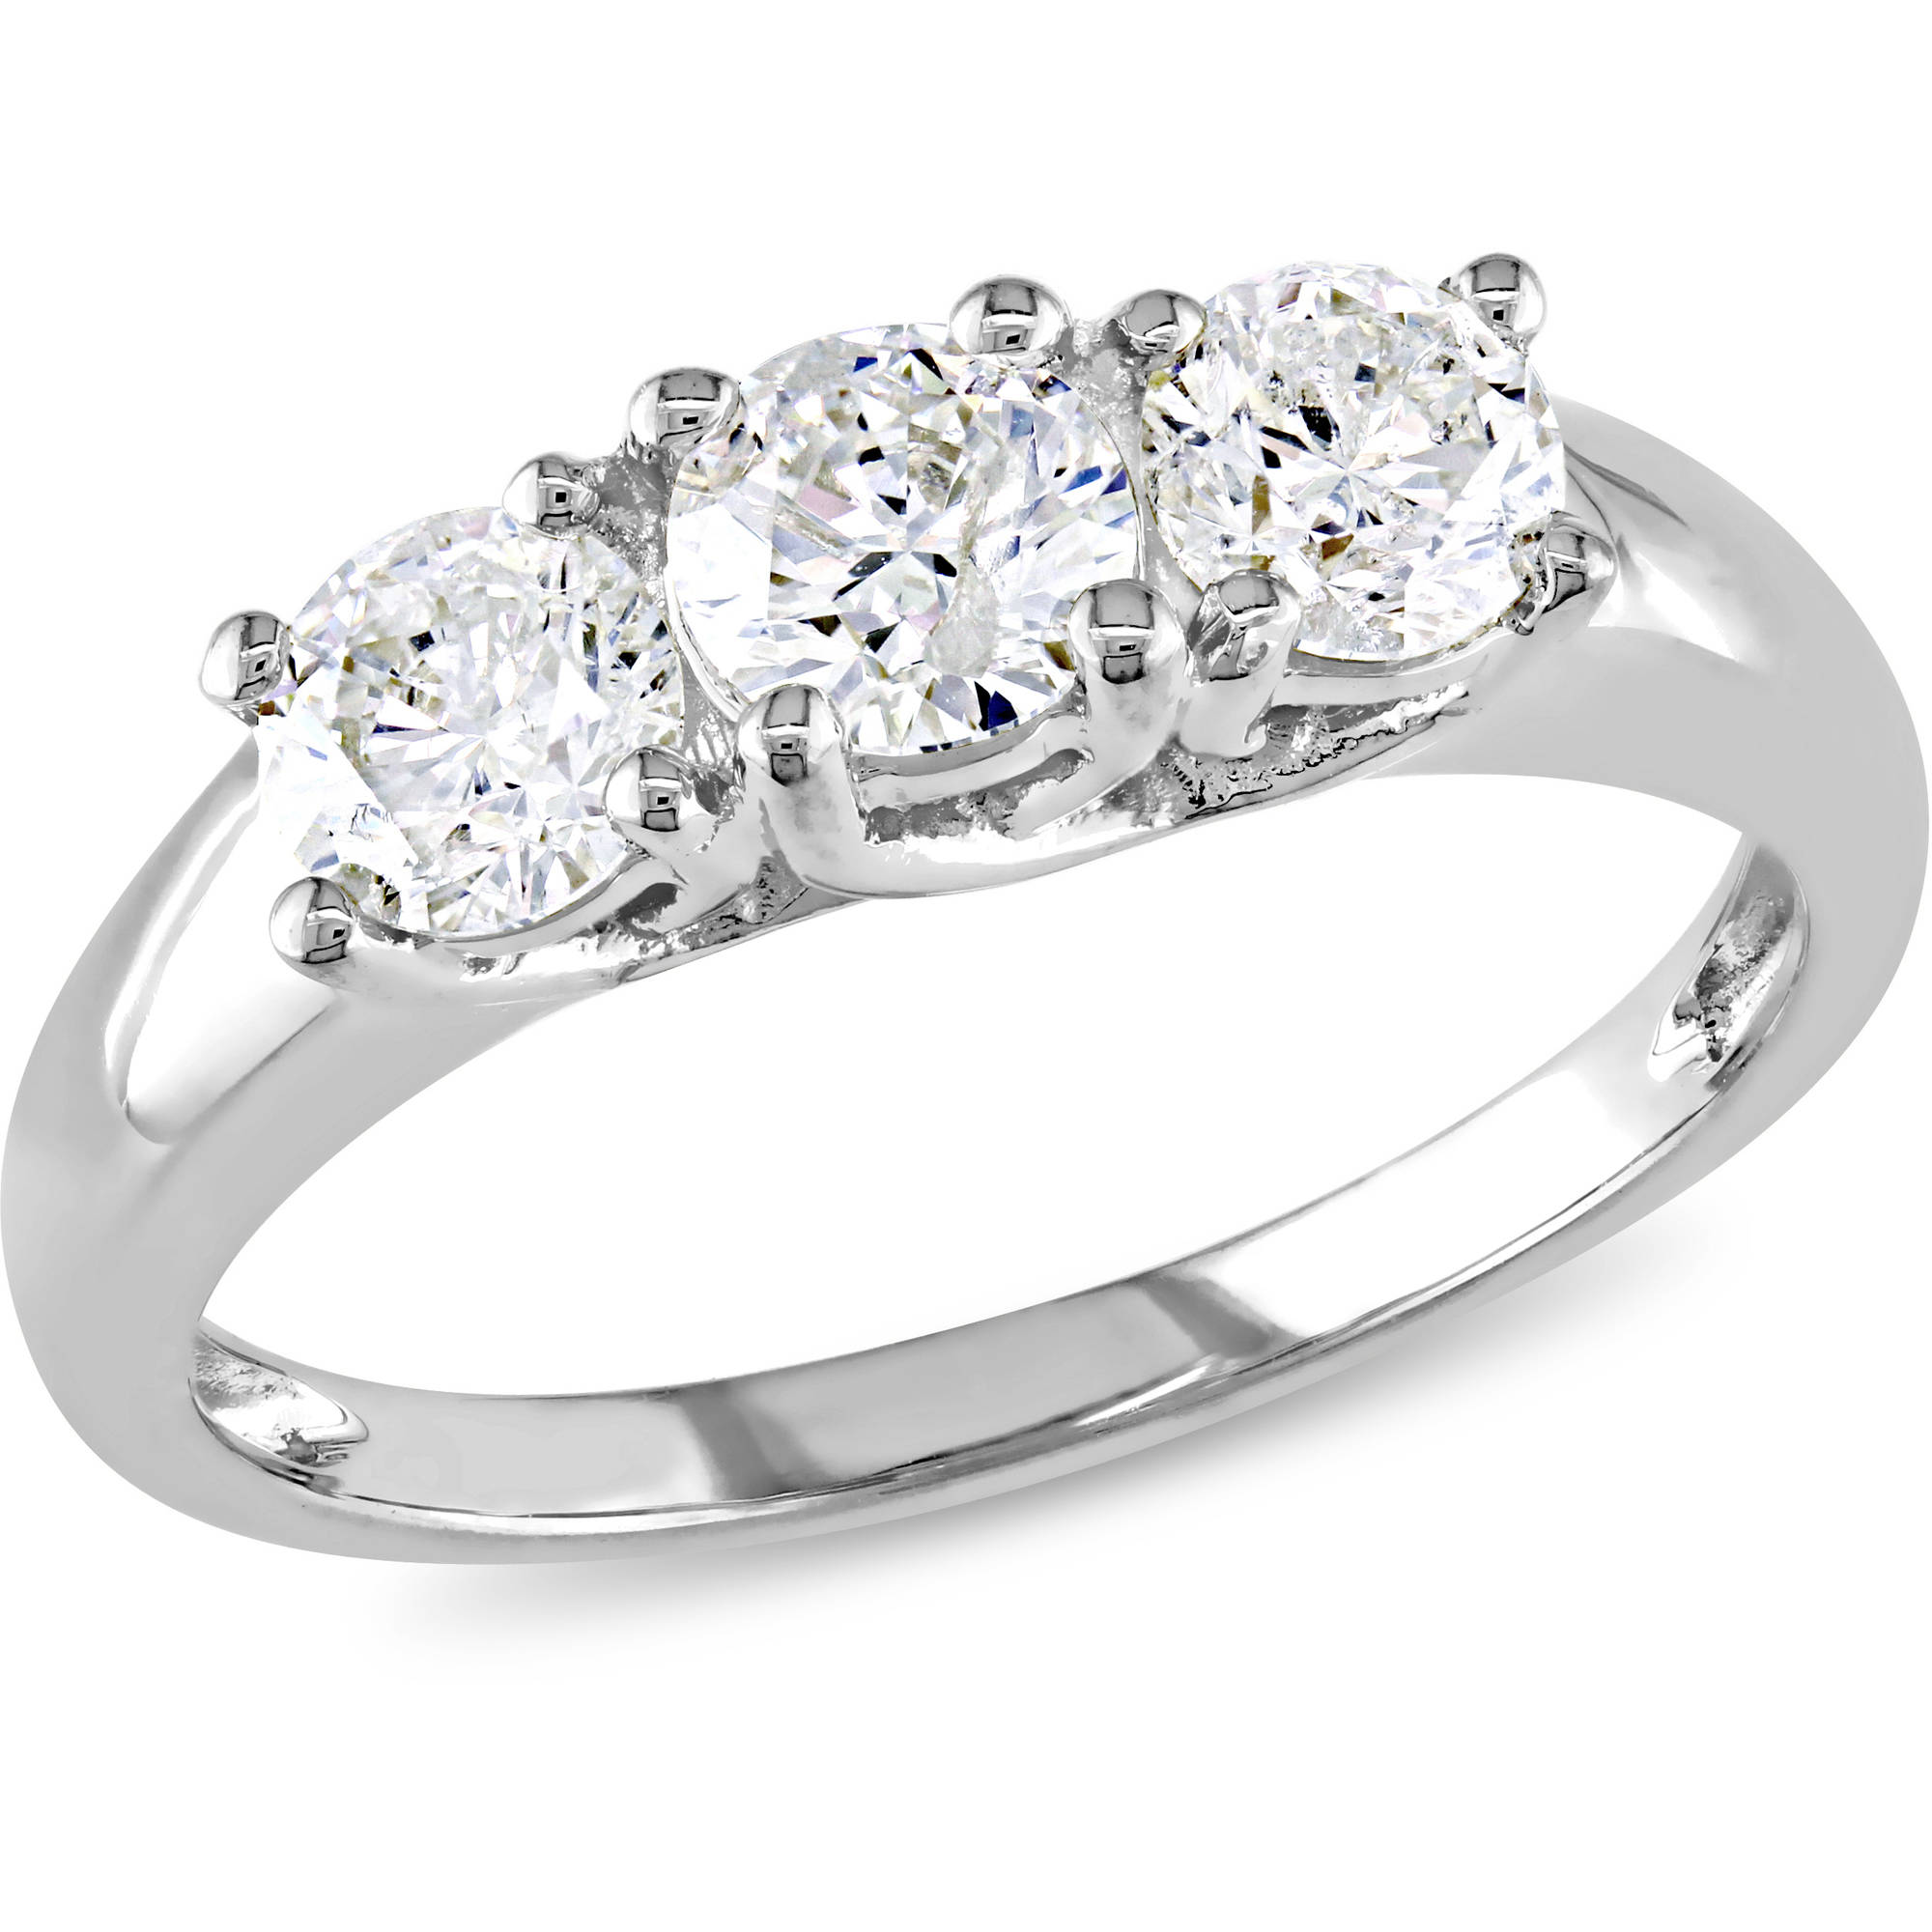 platinum engagement stackables affordable rg jewelers custom rings jewelry wedding browse shop